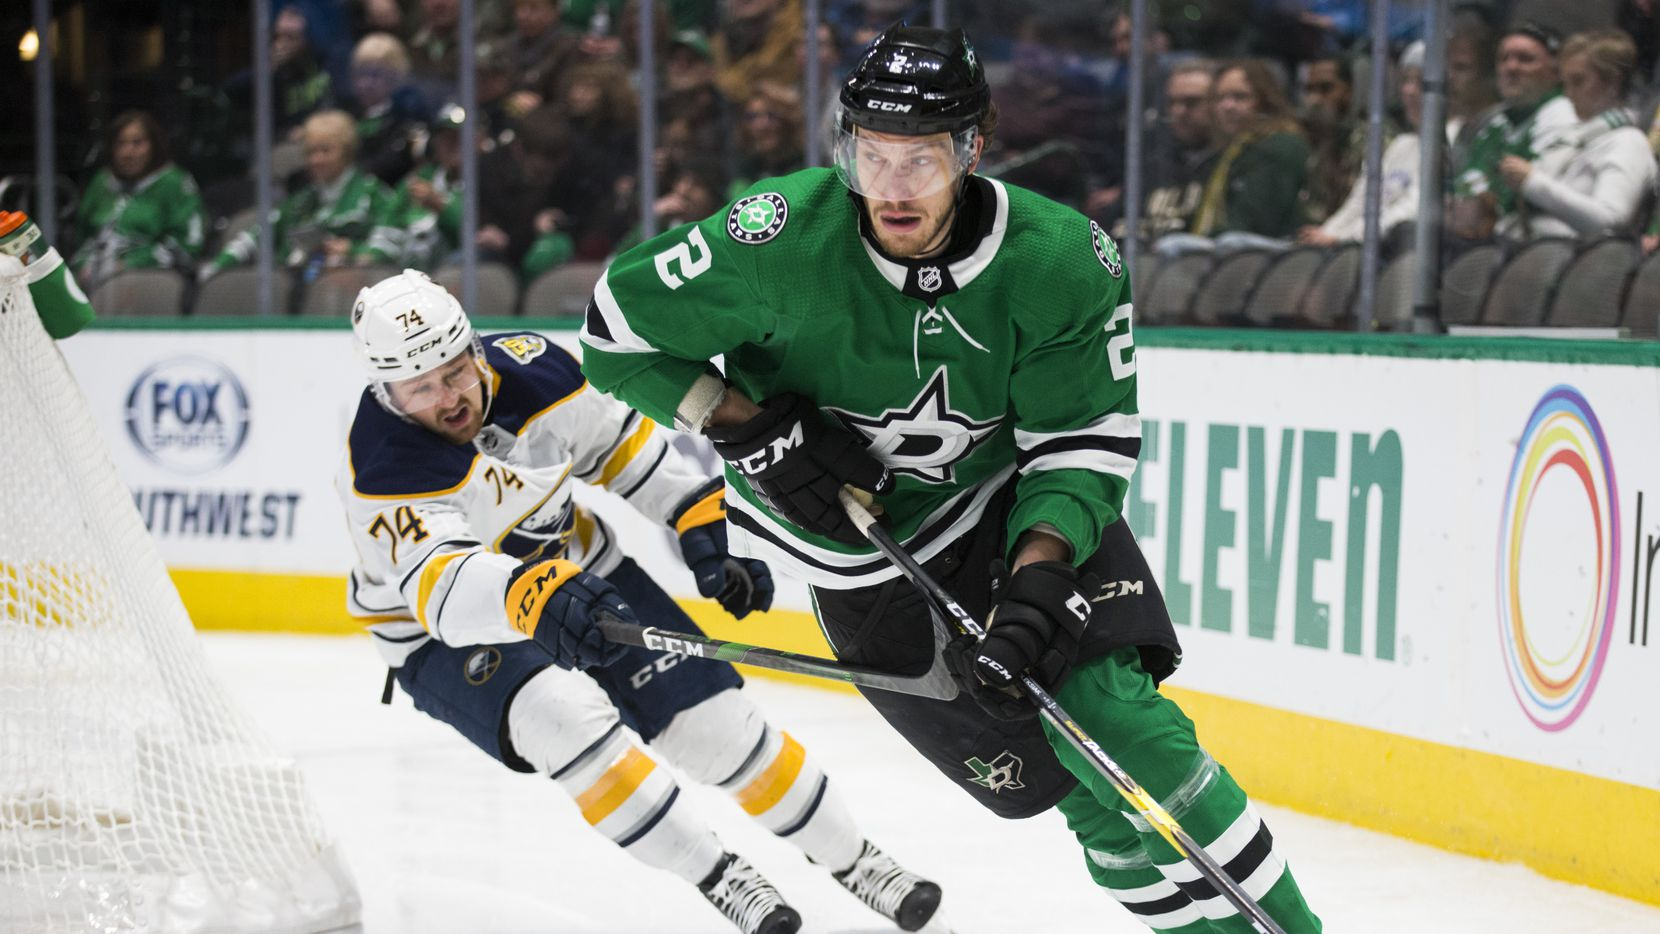 Dallas Stars defenseman Jamie Oleksiak (2)  during an NHL game between the Dallas Stars and the Buffalo Sabres on Thursday, January 16, 2020 at the American Airlines Center in Dallas.